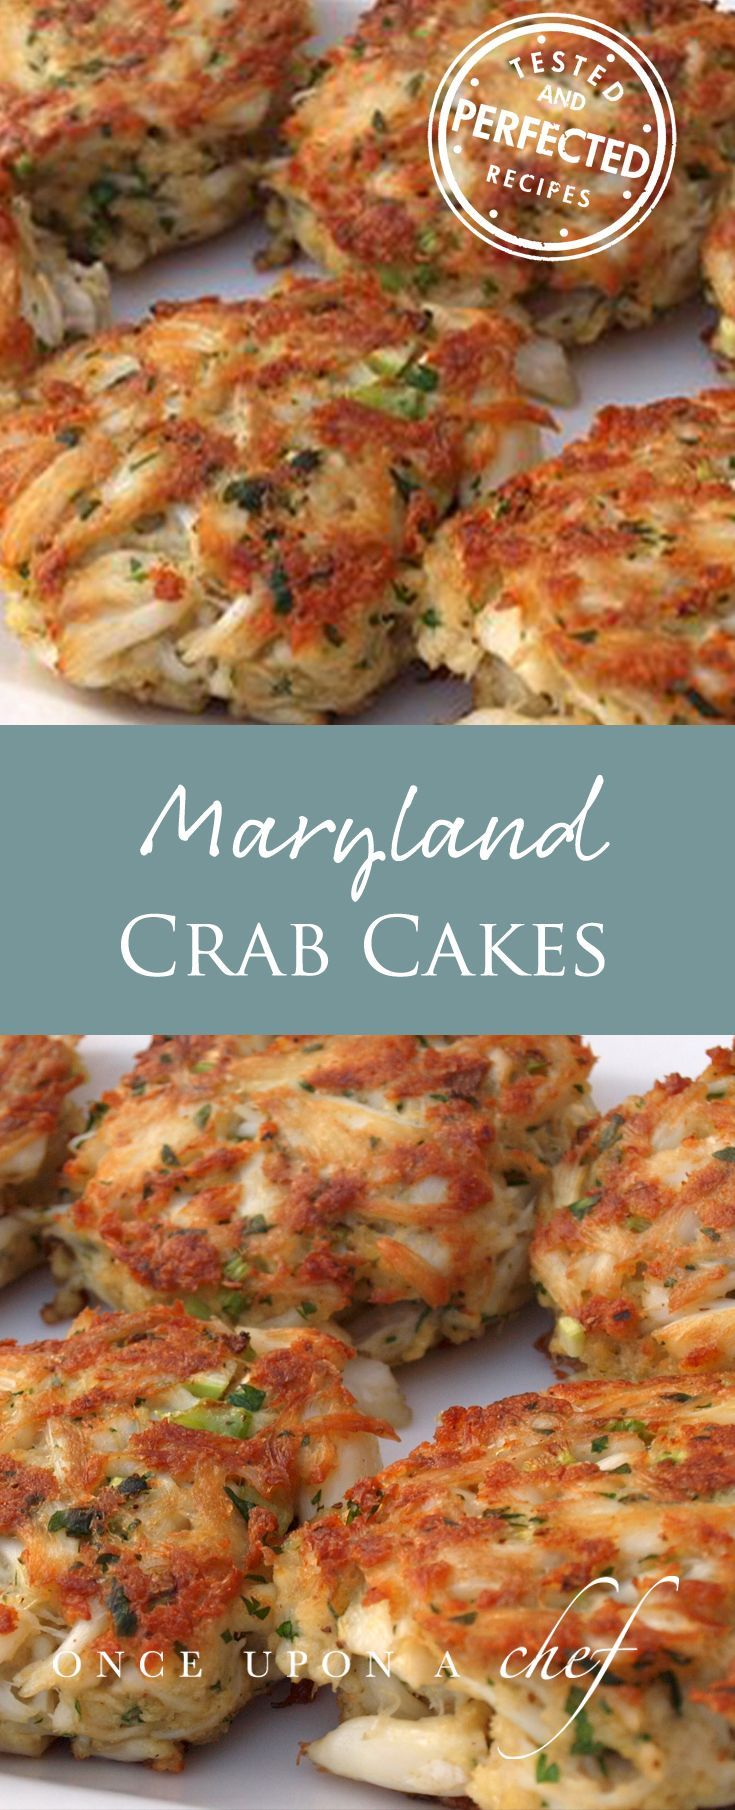 815 best Seafood Recipes images on Pinterest | Seafood, Fish and ...